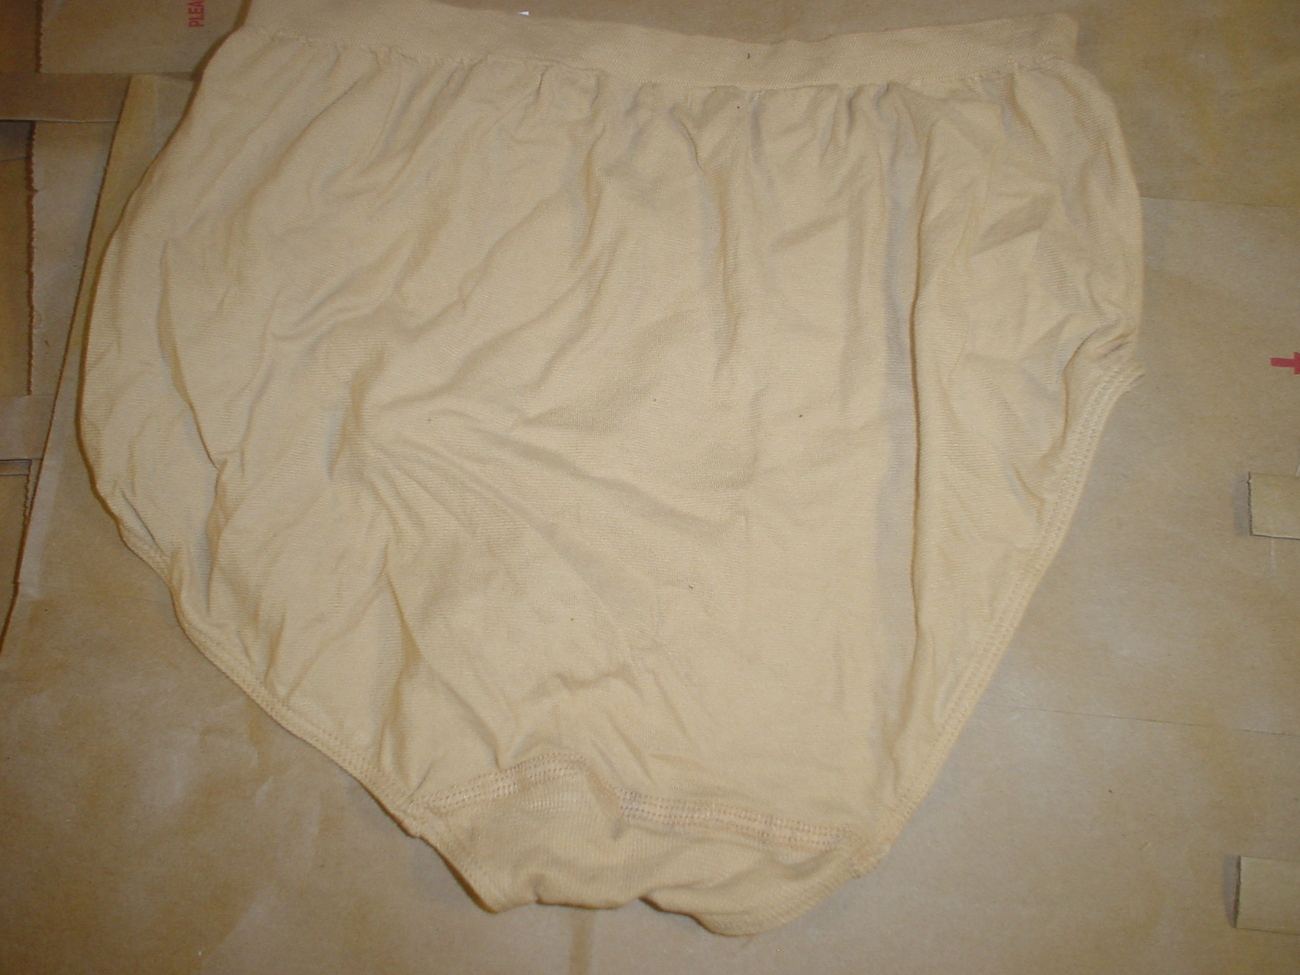 Jockey Seamfree Panty 7/Large Nude SP-Slightly Imperfect Lot of 2 NWOT